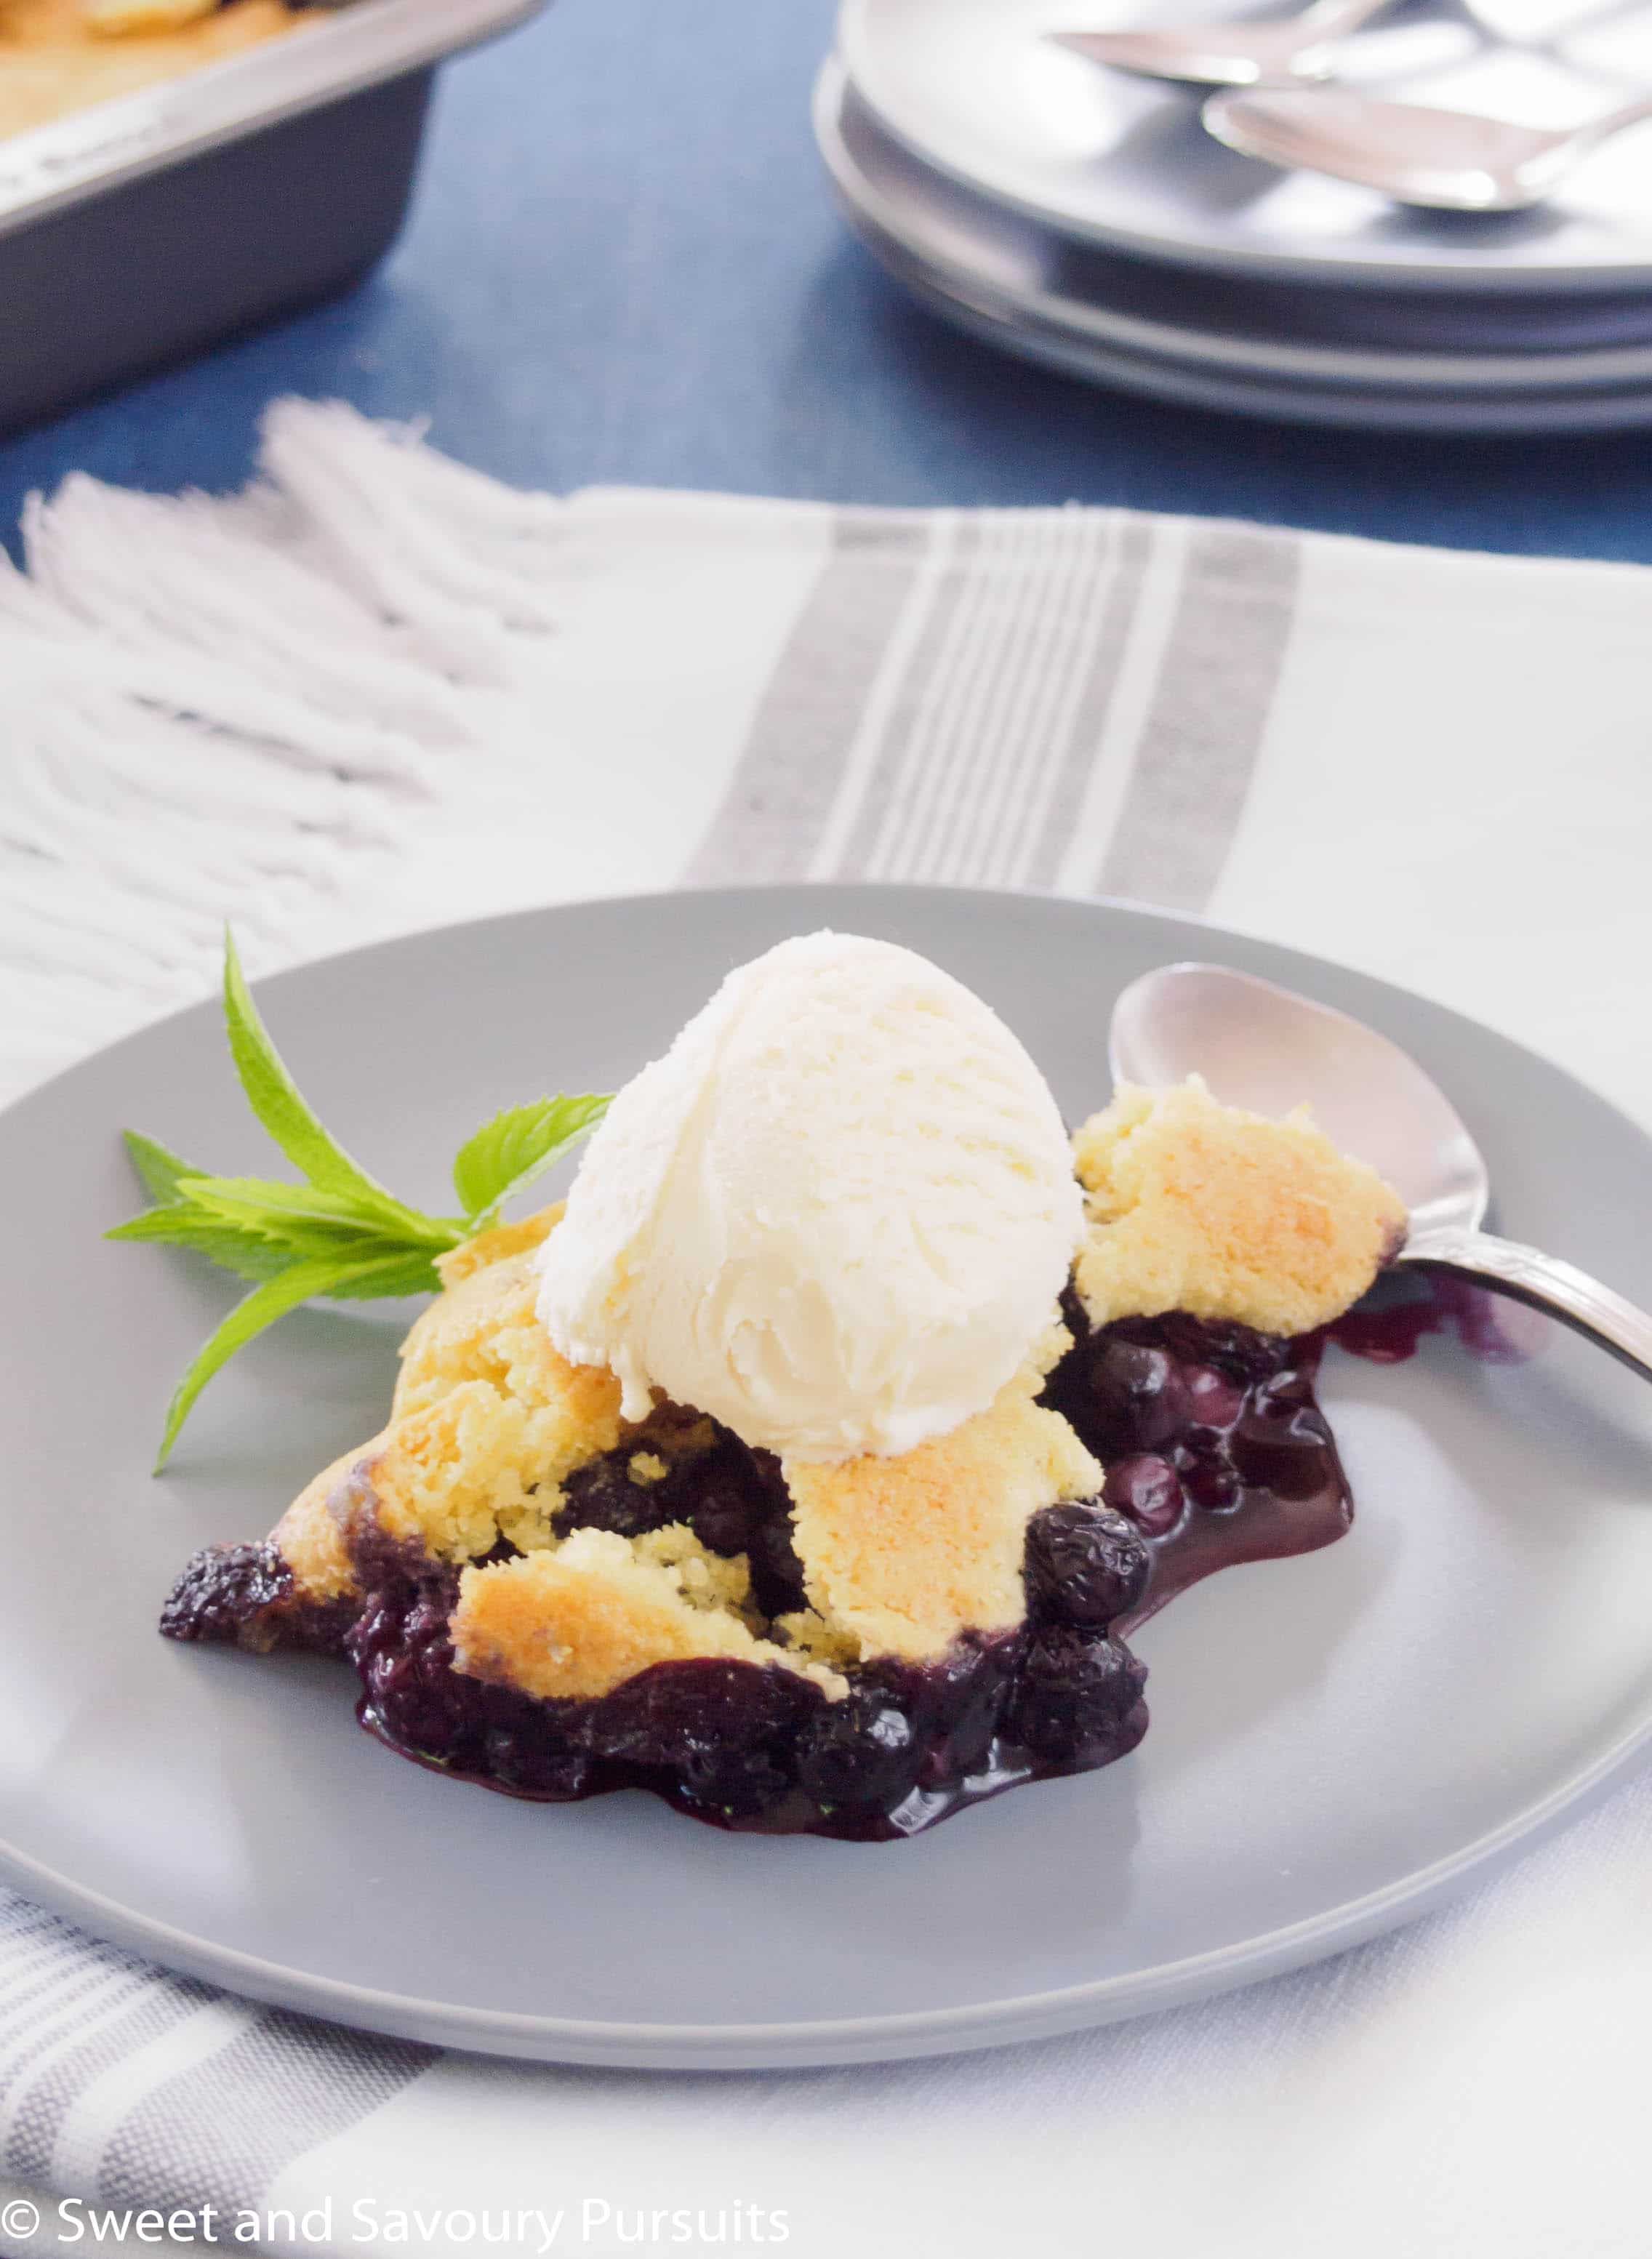 Delicious and easy to make, this Blueberry Cobbler is great for weeknight desserts or casual gatherings. Serve the cobbler warm with vanilla ice cream for the perfect summer treat!